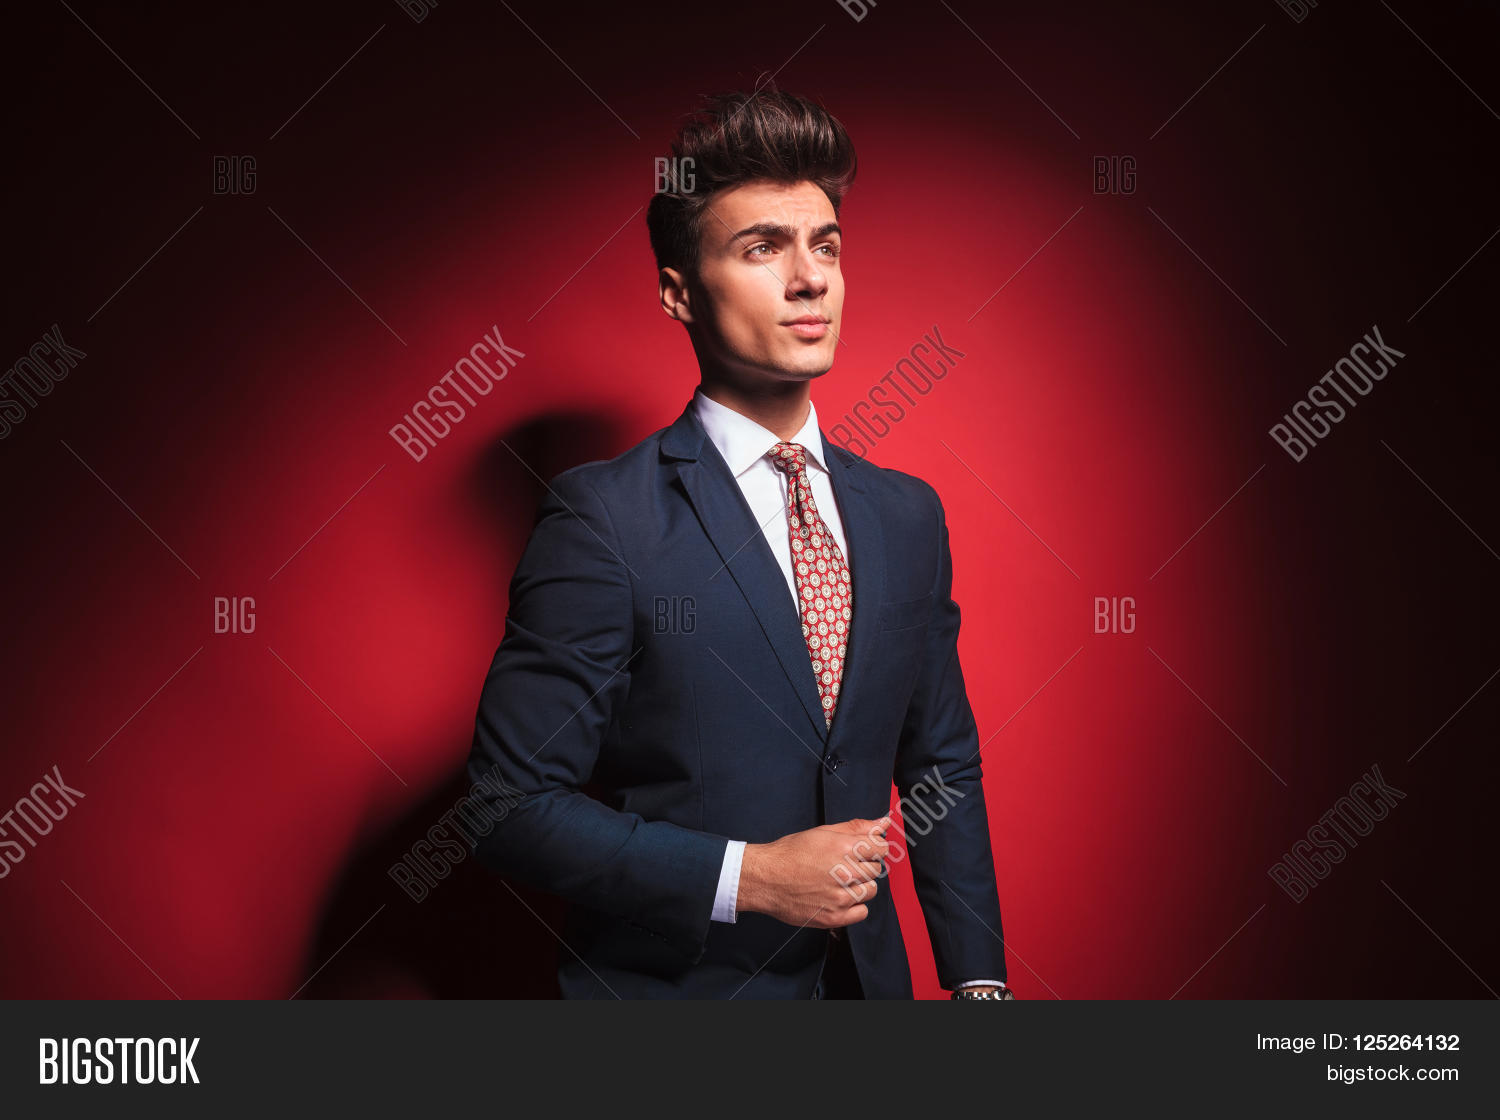 e2b3b39564e7 portrait of confident young businessman in black suit with red tie posing  arranging his jacket and